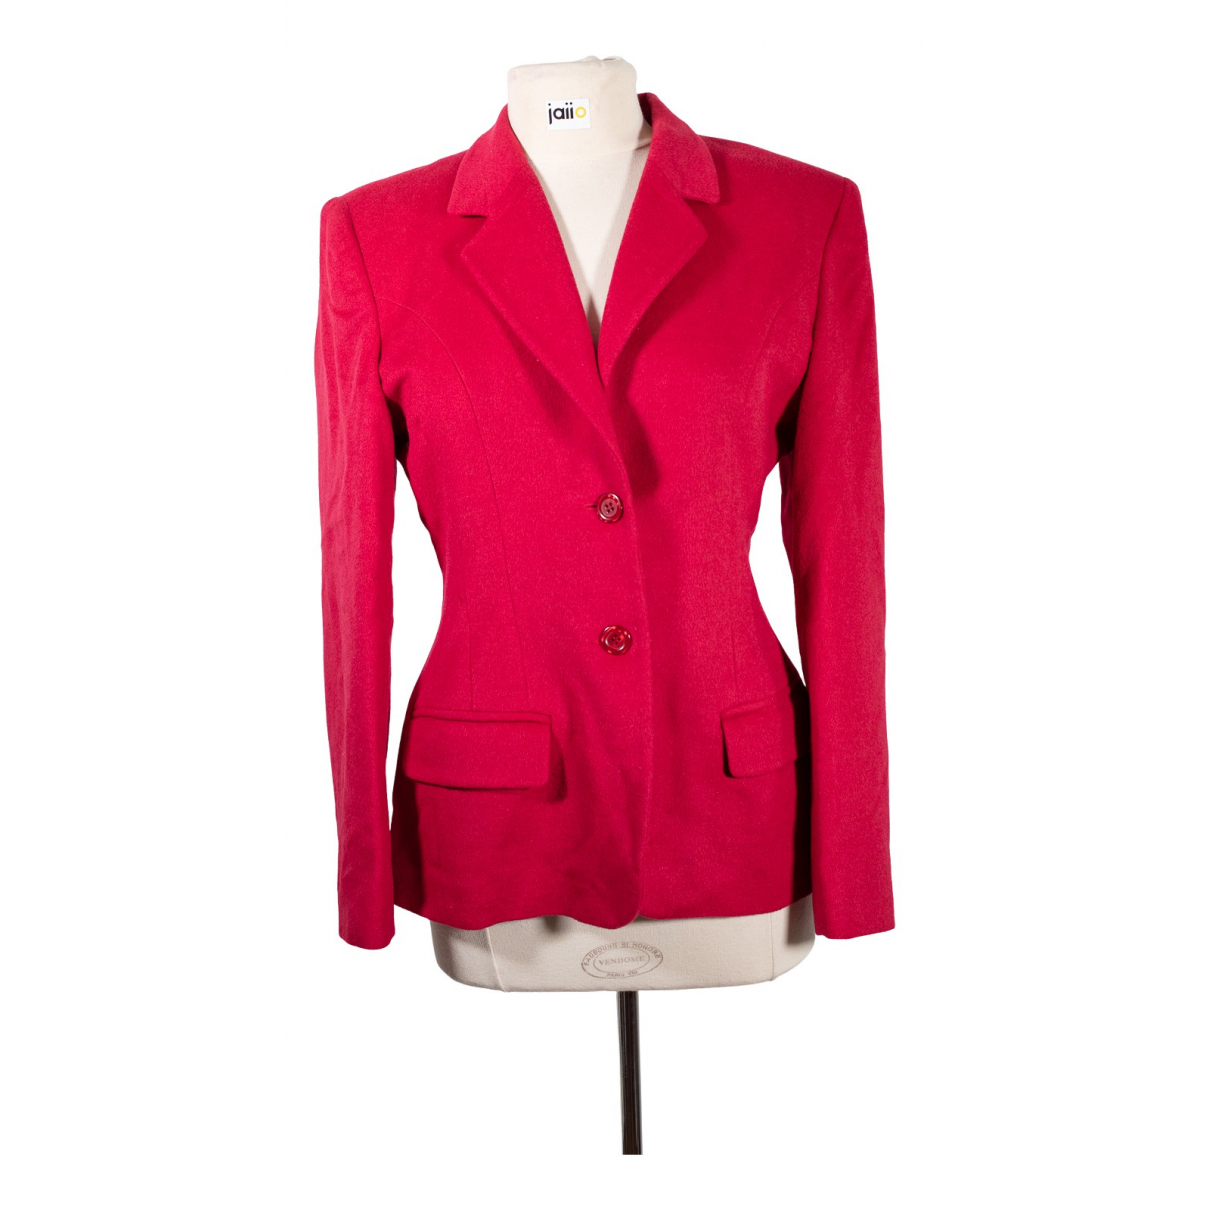 Irene Van Ryb \N Red Wool jacket for Women XL International